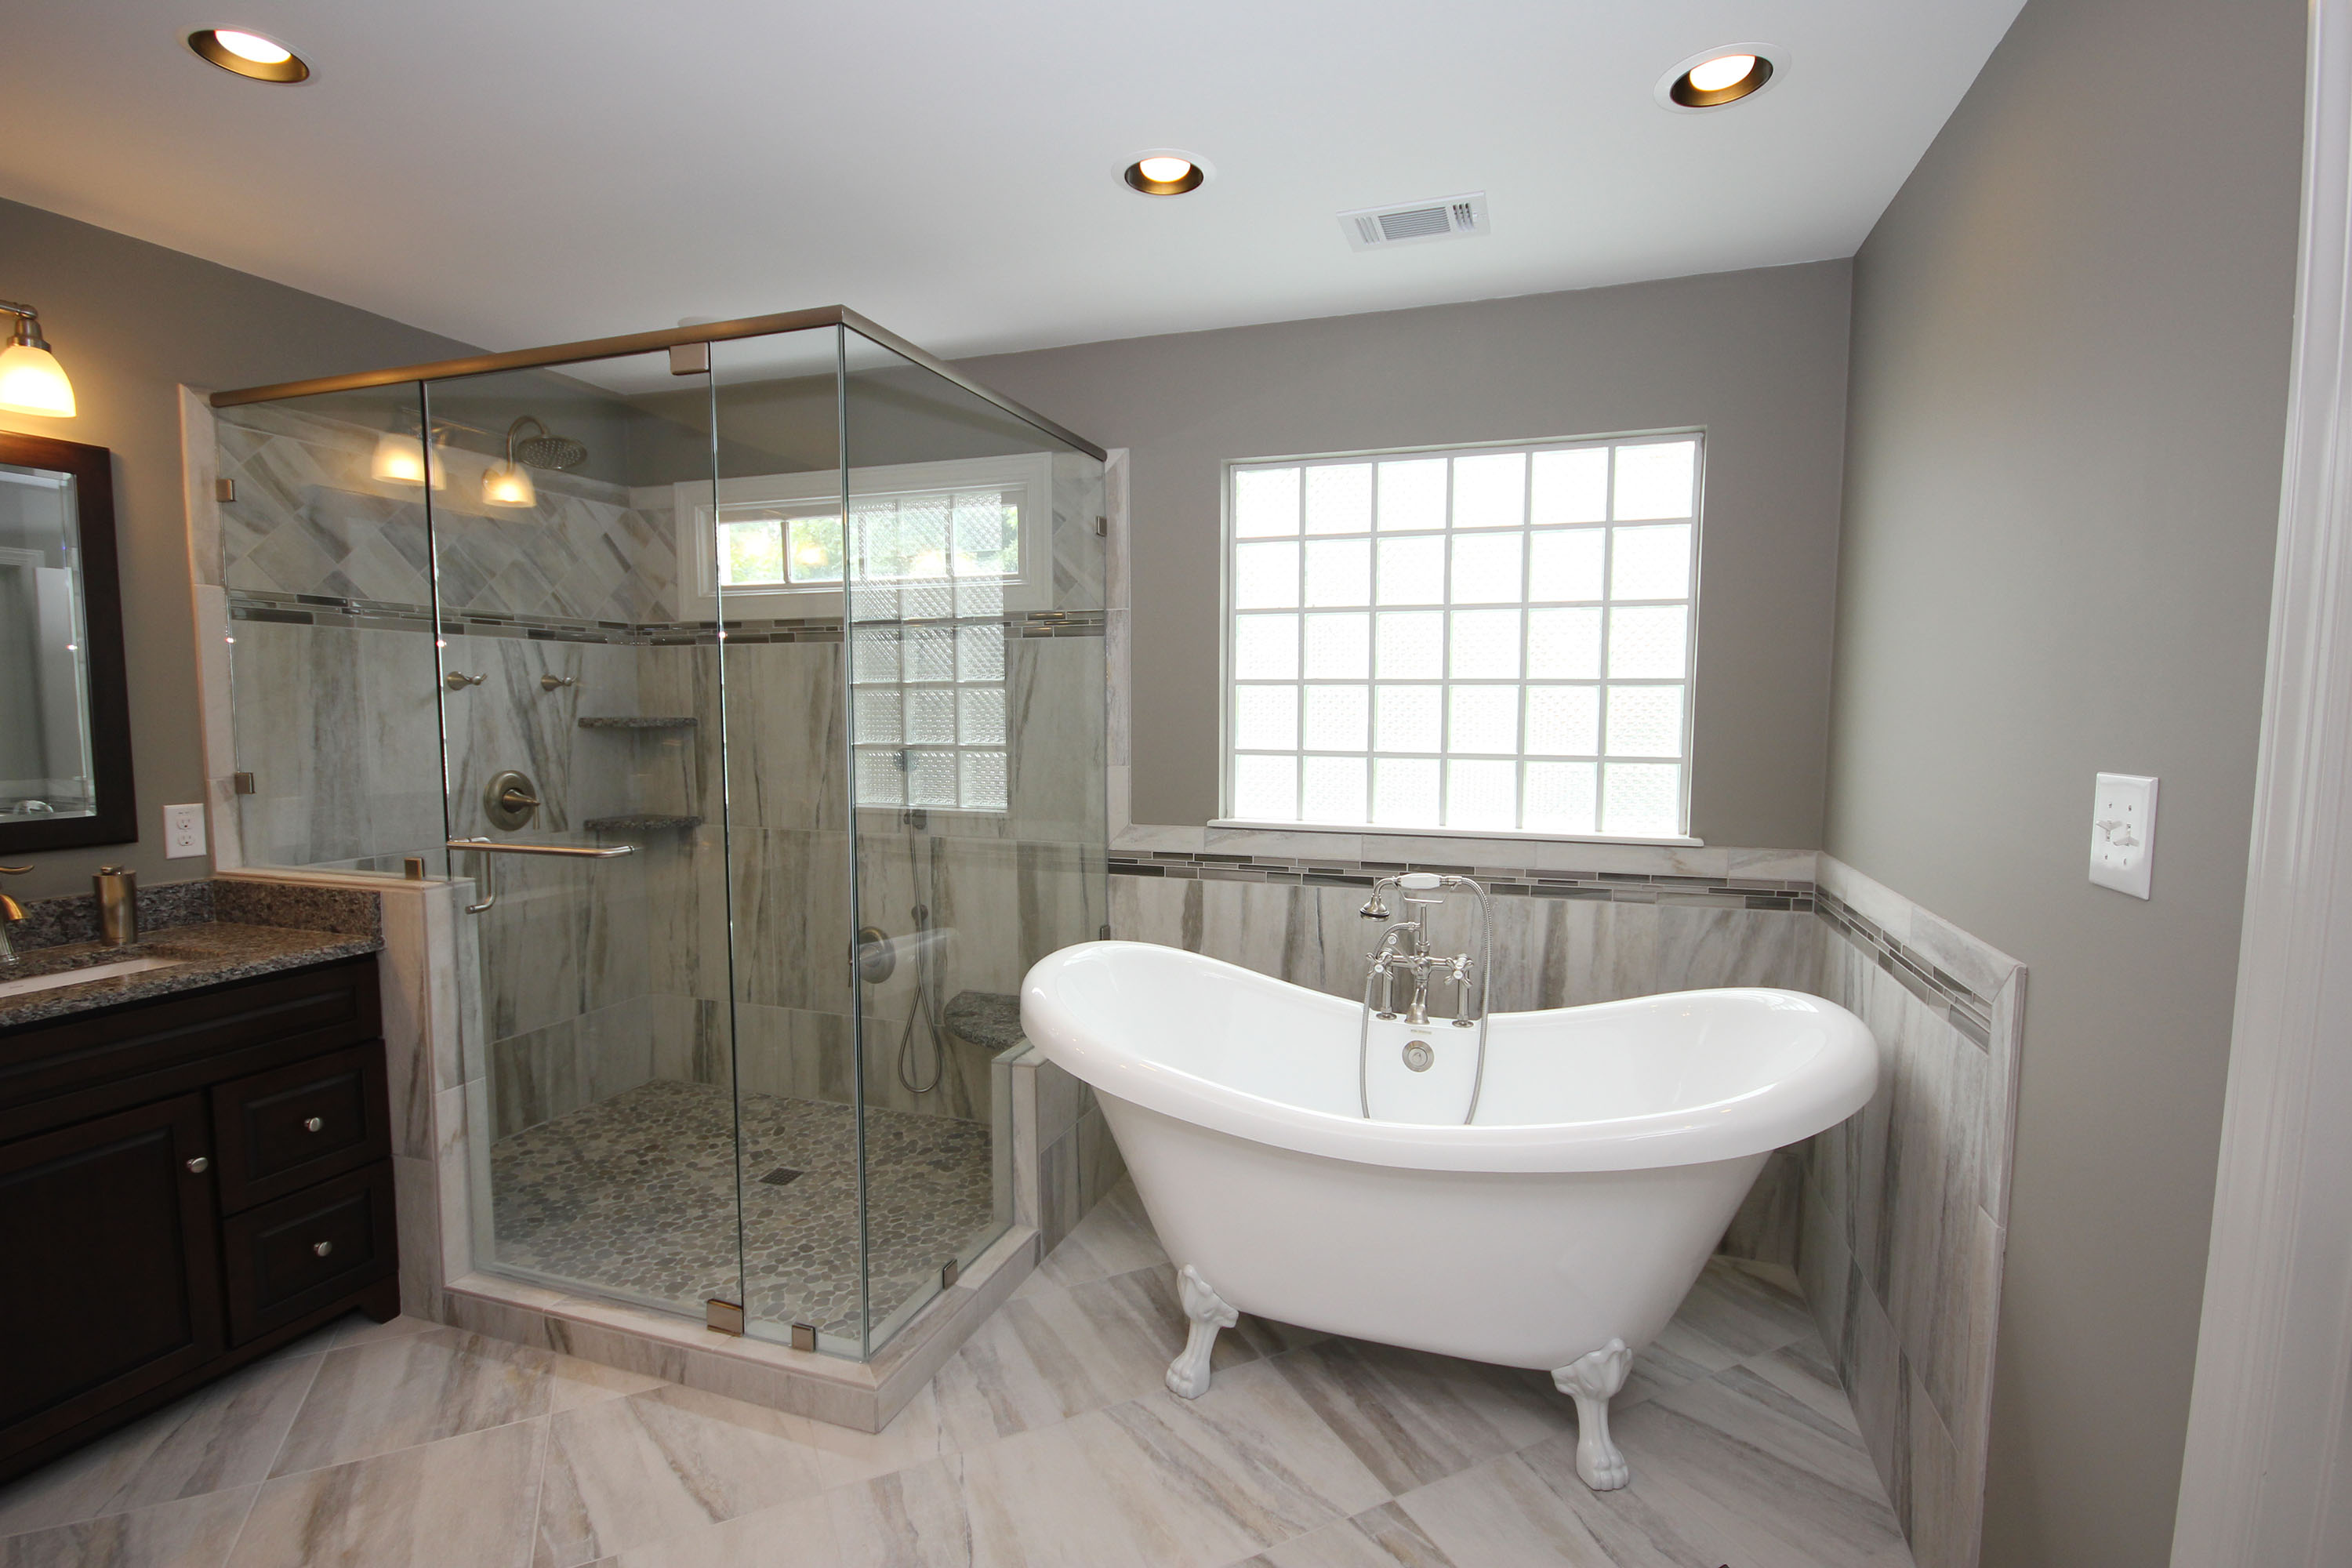 Bathroom Remodel Cary Nc : Freestanding bathtubs by cary bathroom remodeling